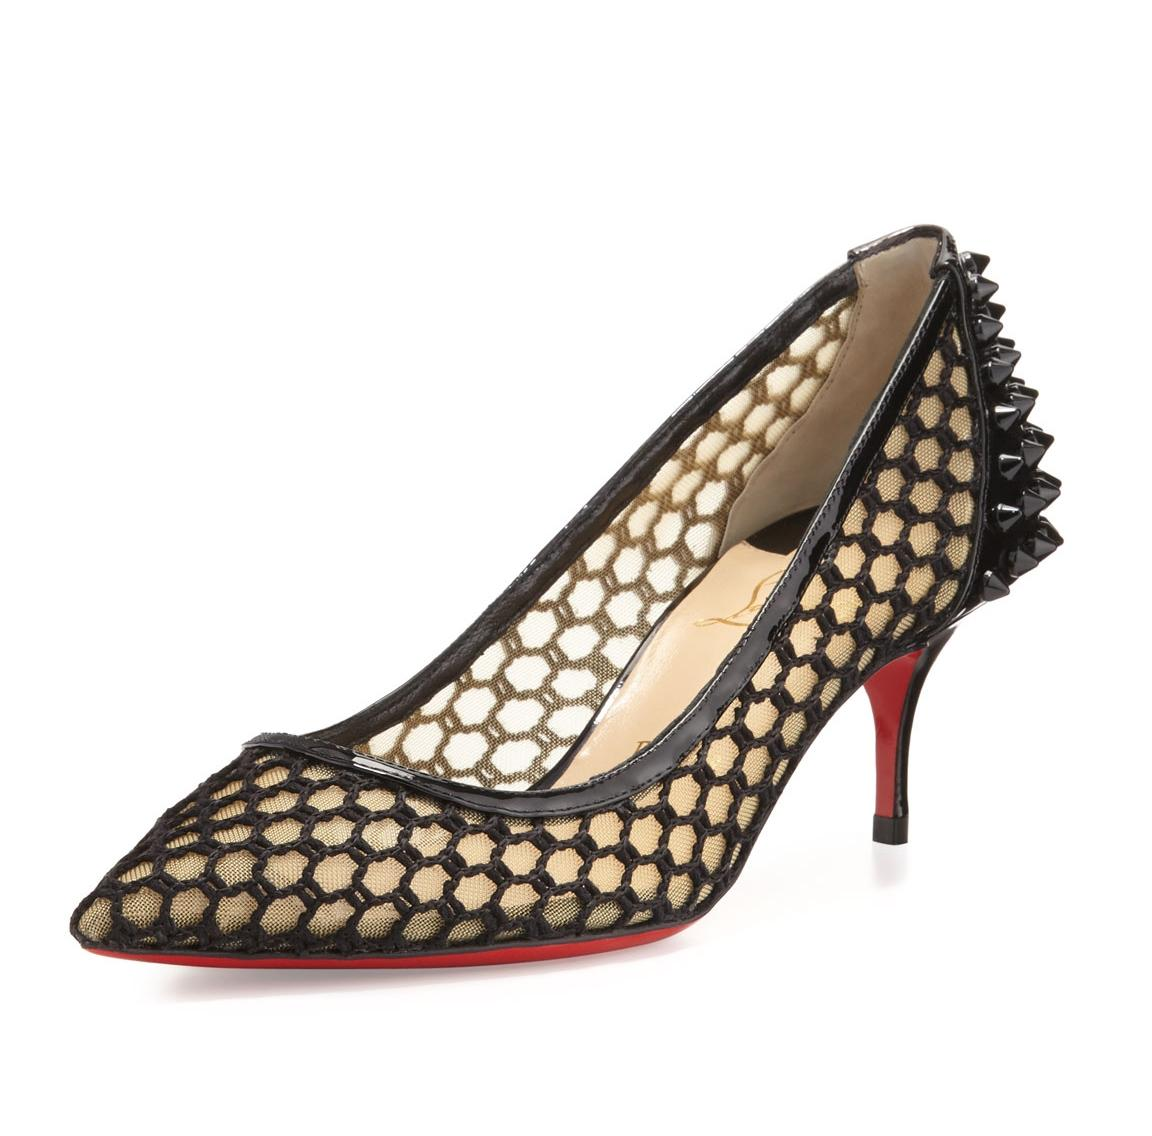 969044d7c201 Man Woman Man Woman Man Woman :Christian Louboutin Black Guni Mesh Spike  55mm Red Sole Pumps Size EU 37 (Approx. US 7) Regular (M